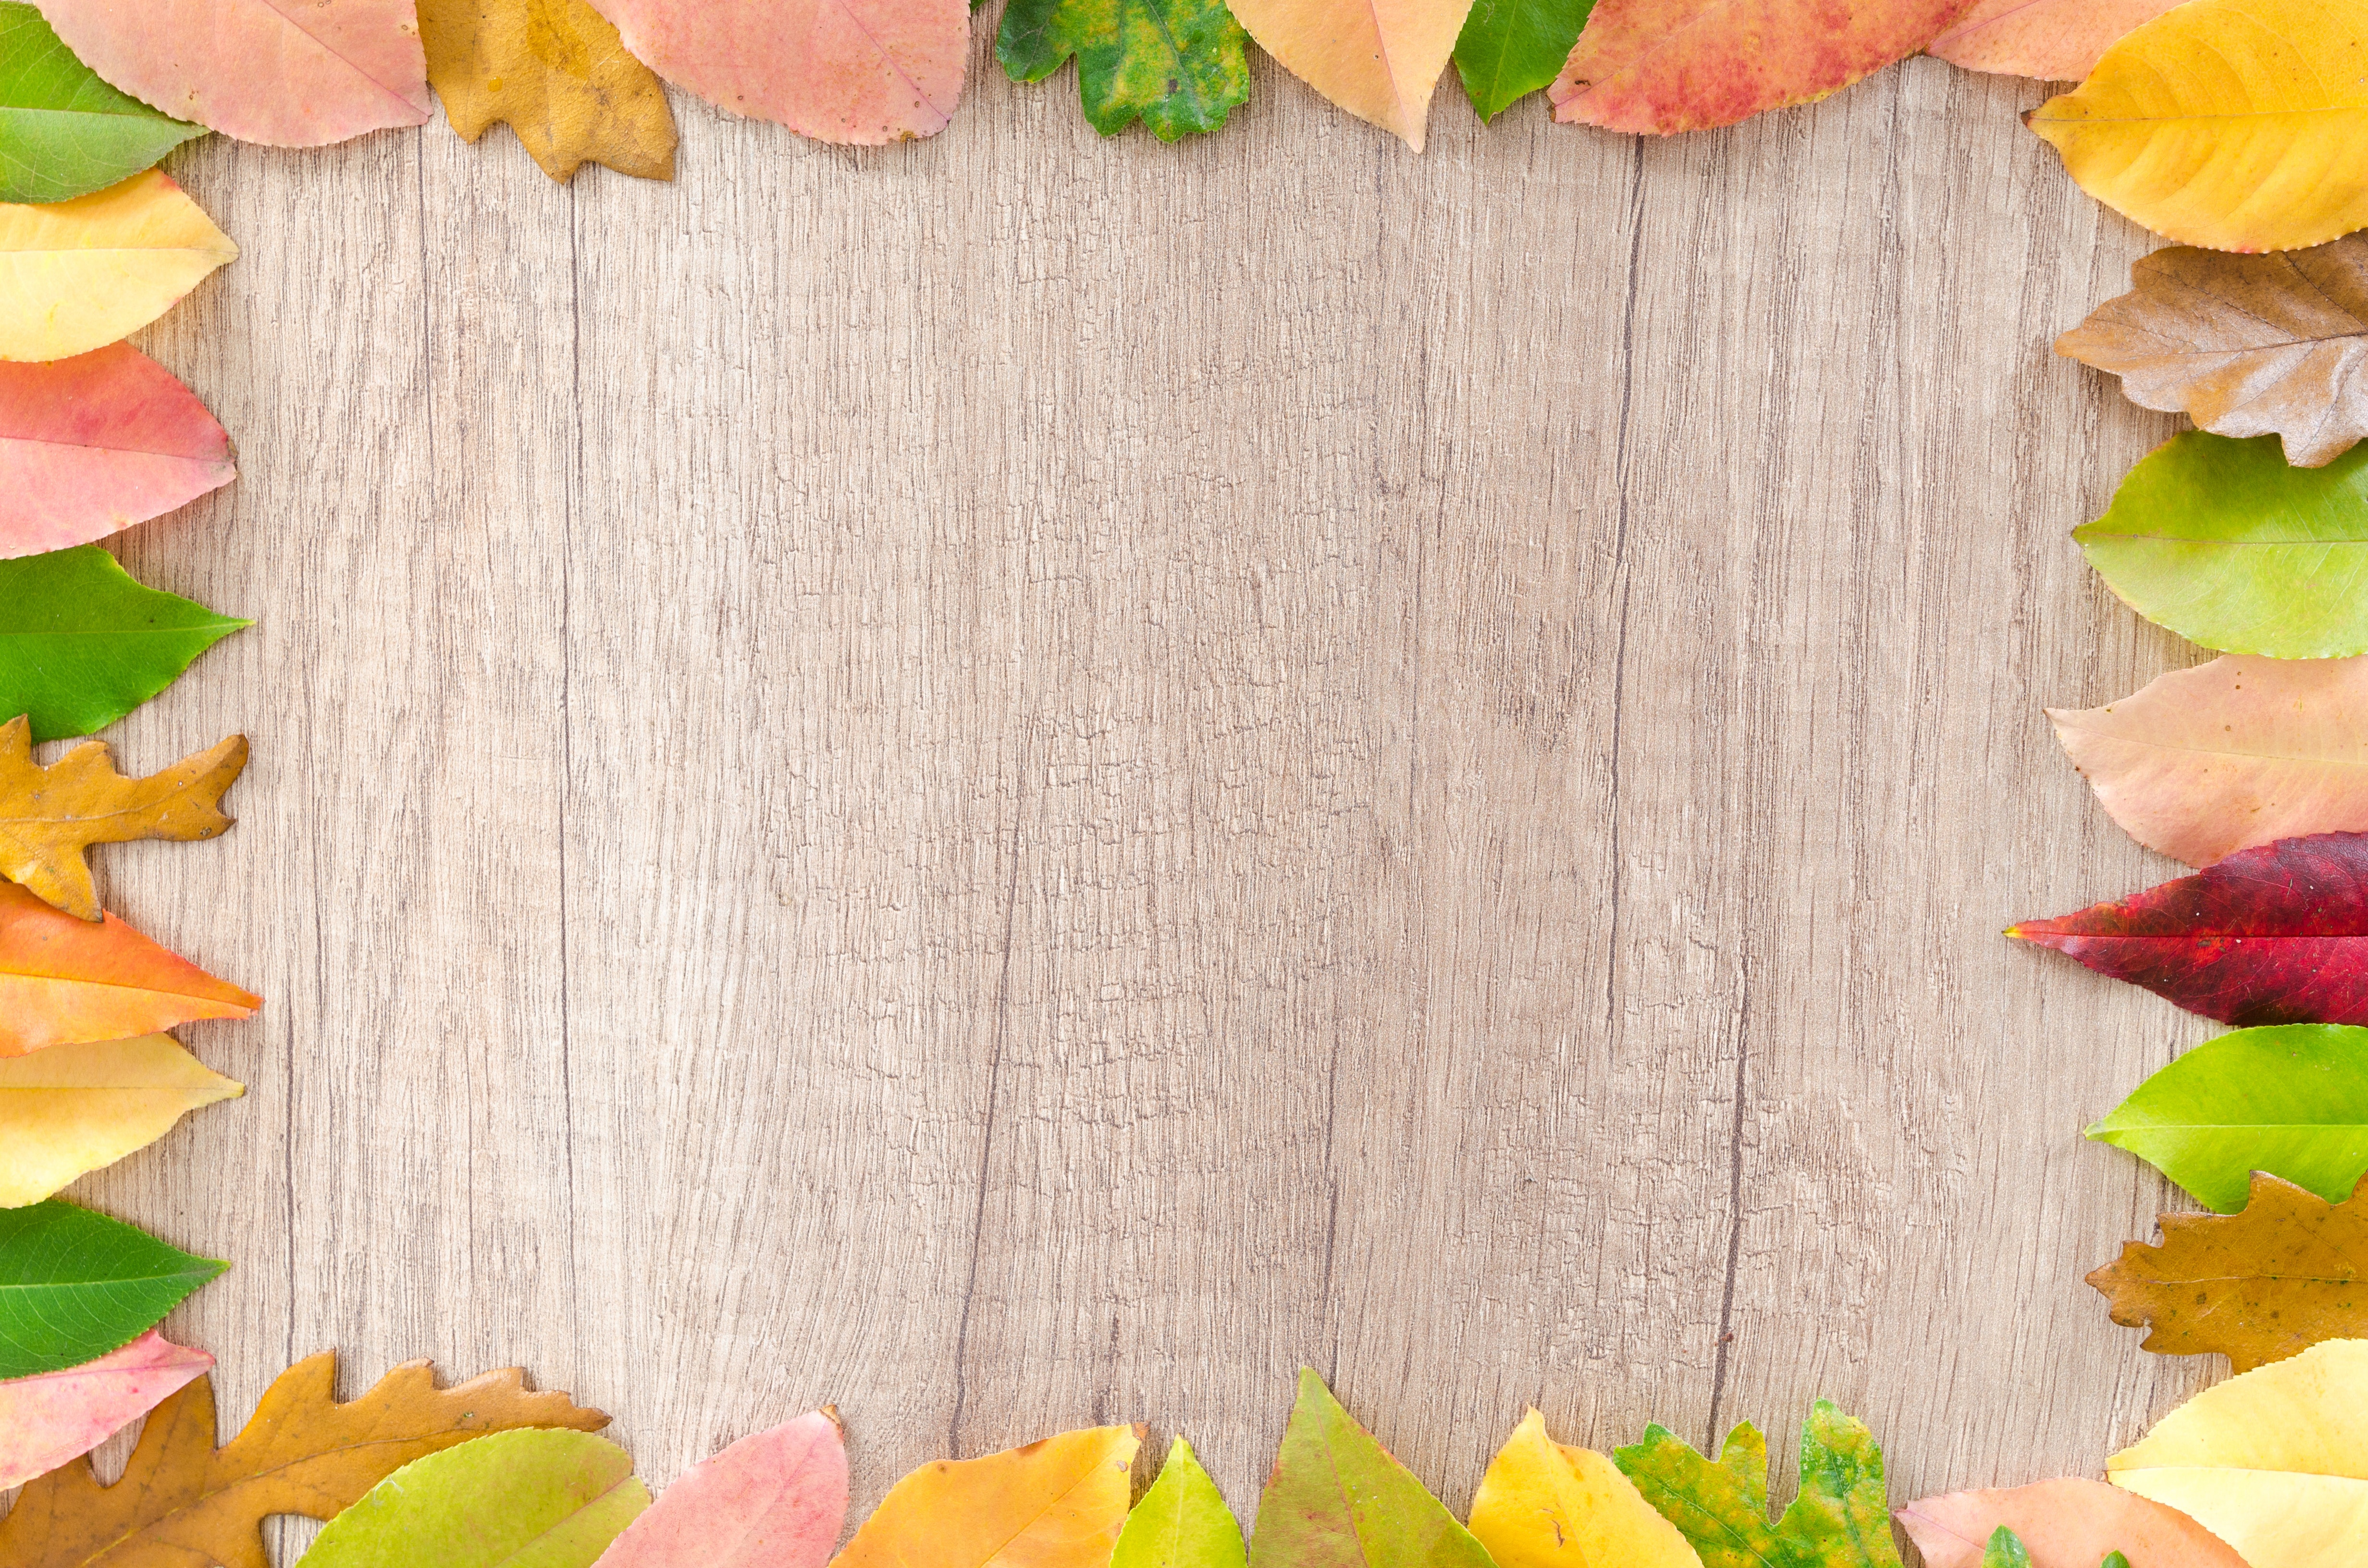 Assorted leaves piled on border of brown wooden board photo